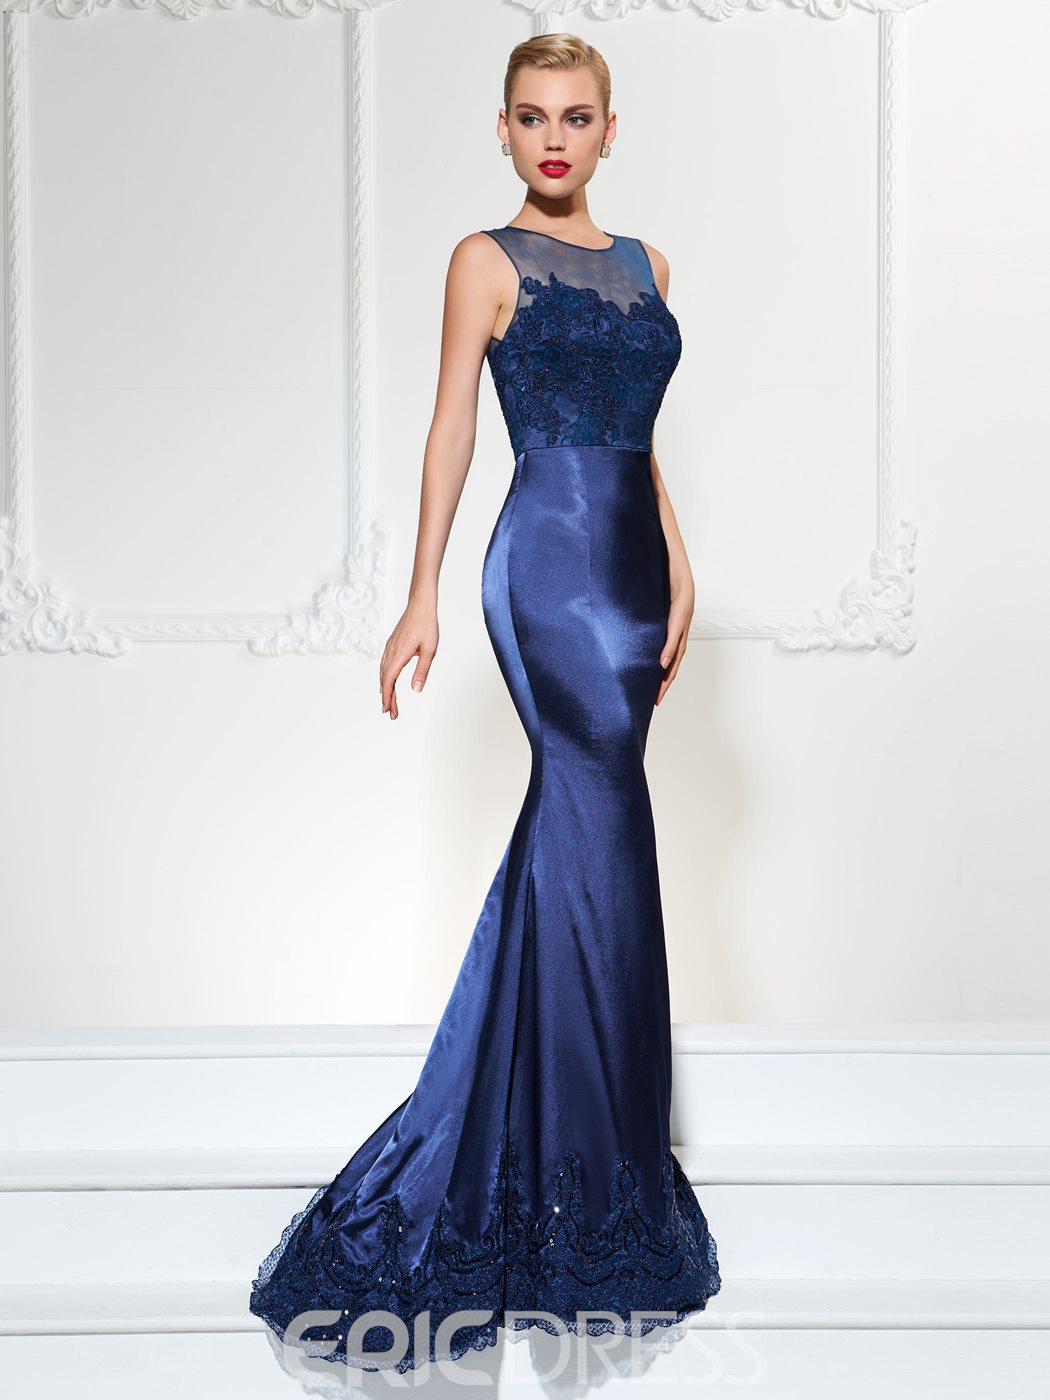 Ericdress Scoop Neckline Lace Applique Floor Length Mermaid Evening Dress With Tulle Cape